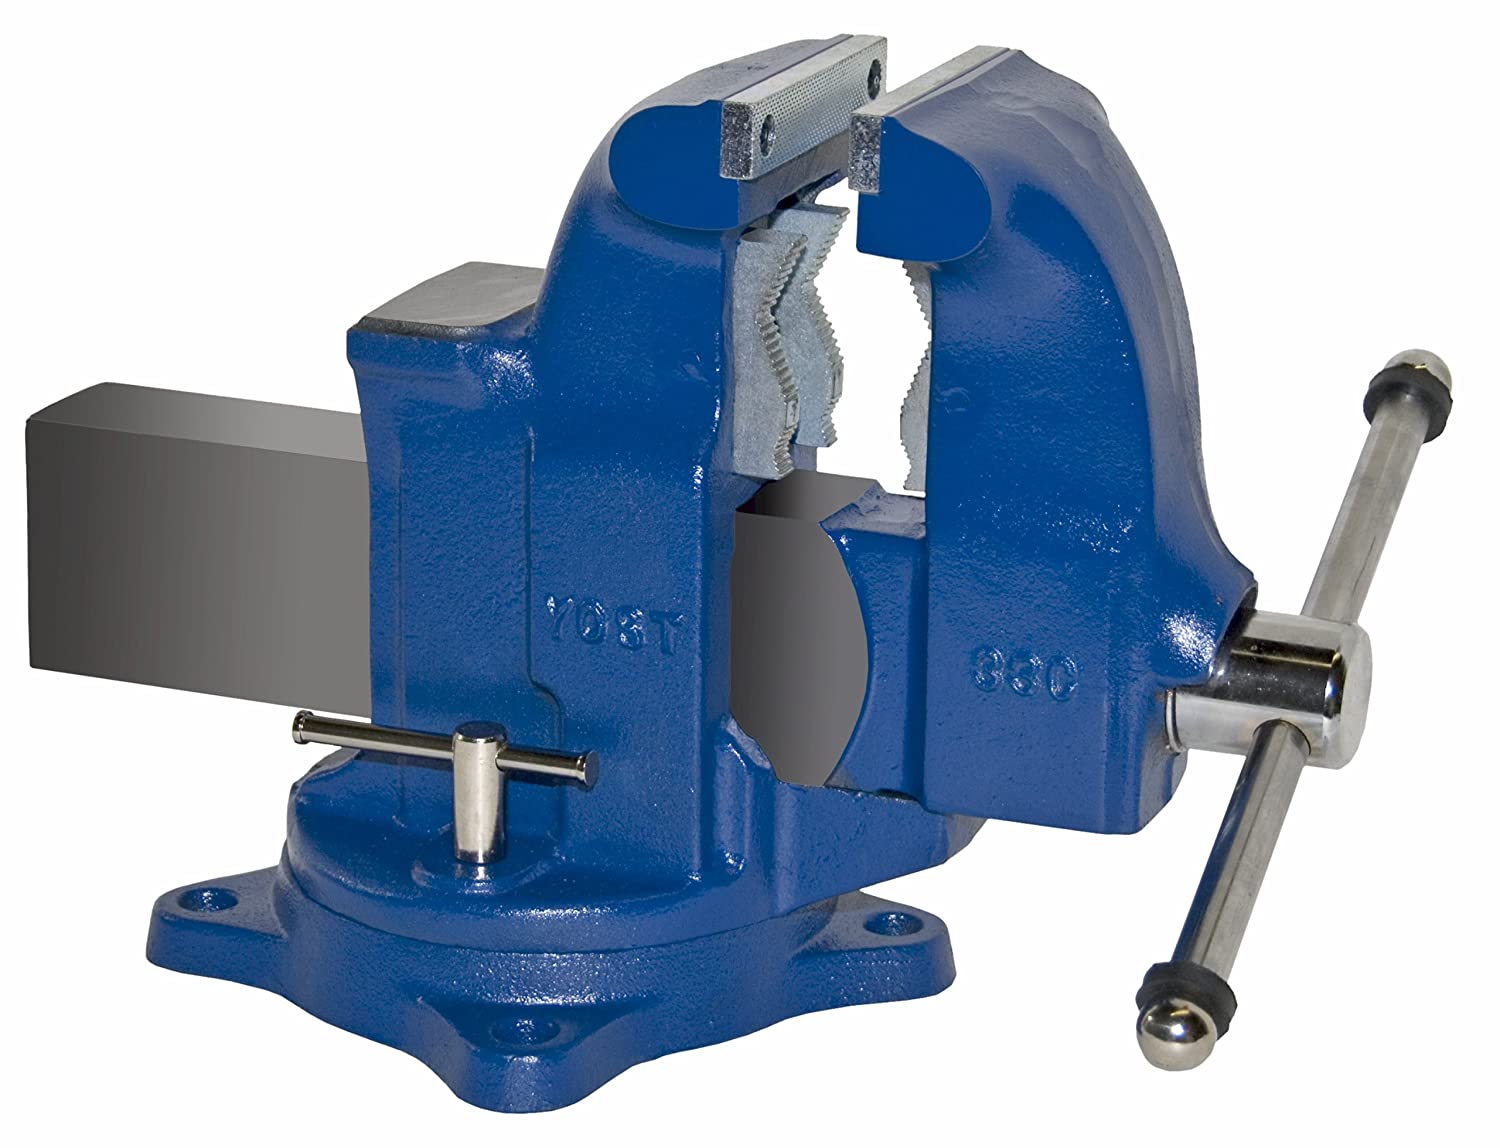 Top 10 Best Heavy Duty Bench Vises Buying Guide 2019 2020